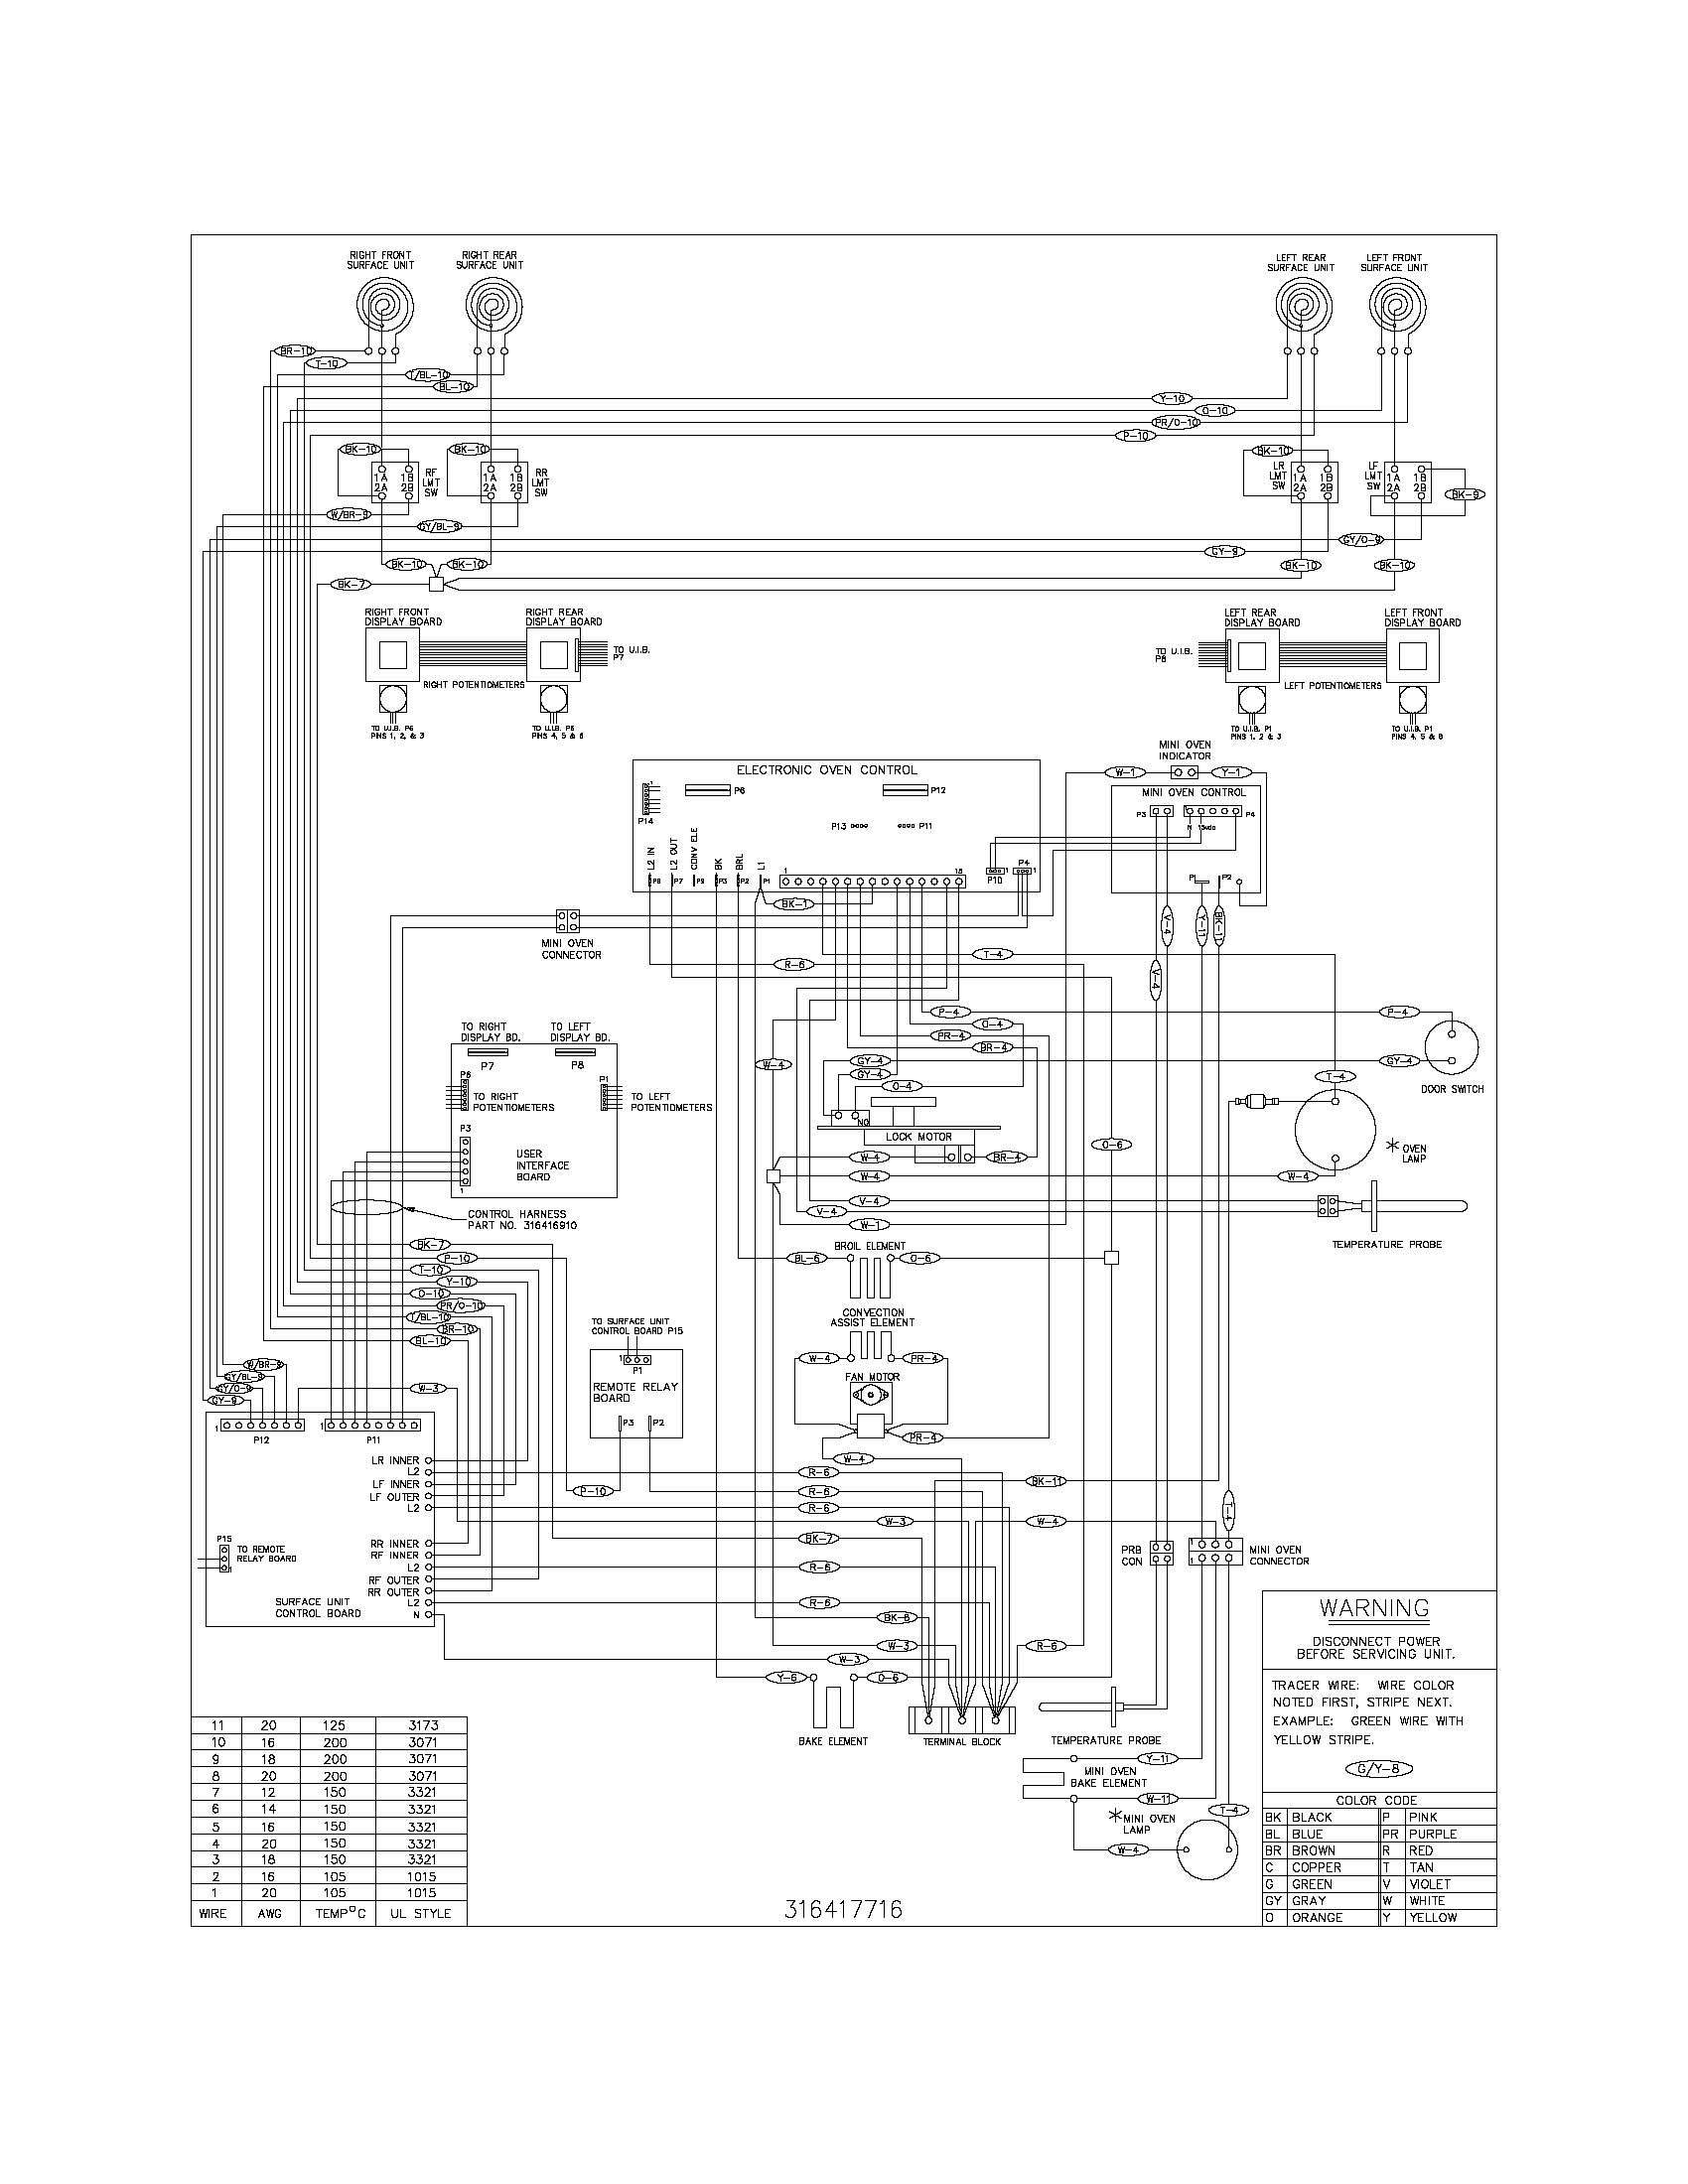 wiring diagram for frigidaire range the wiring diagram frigidaire glefm397dsb electric range timer stove clocks and wiring diagram